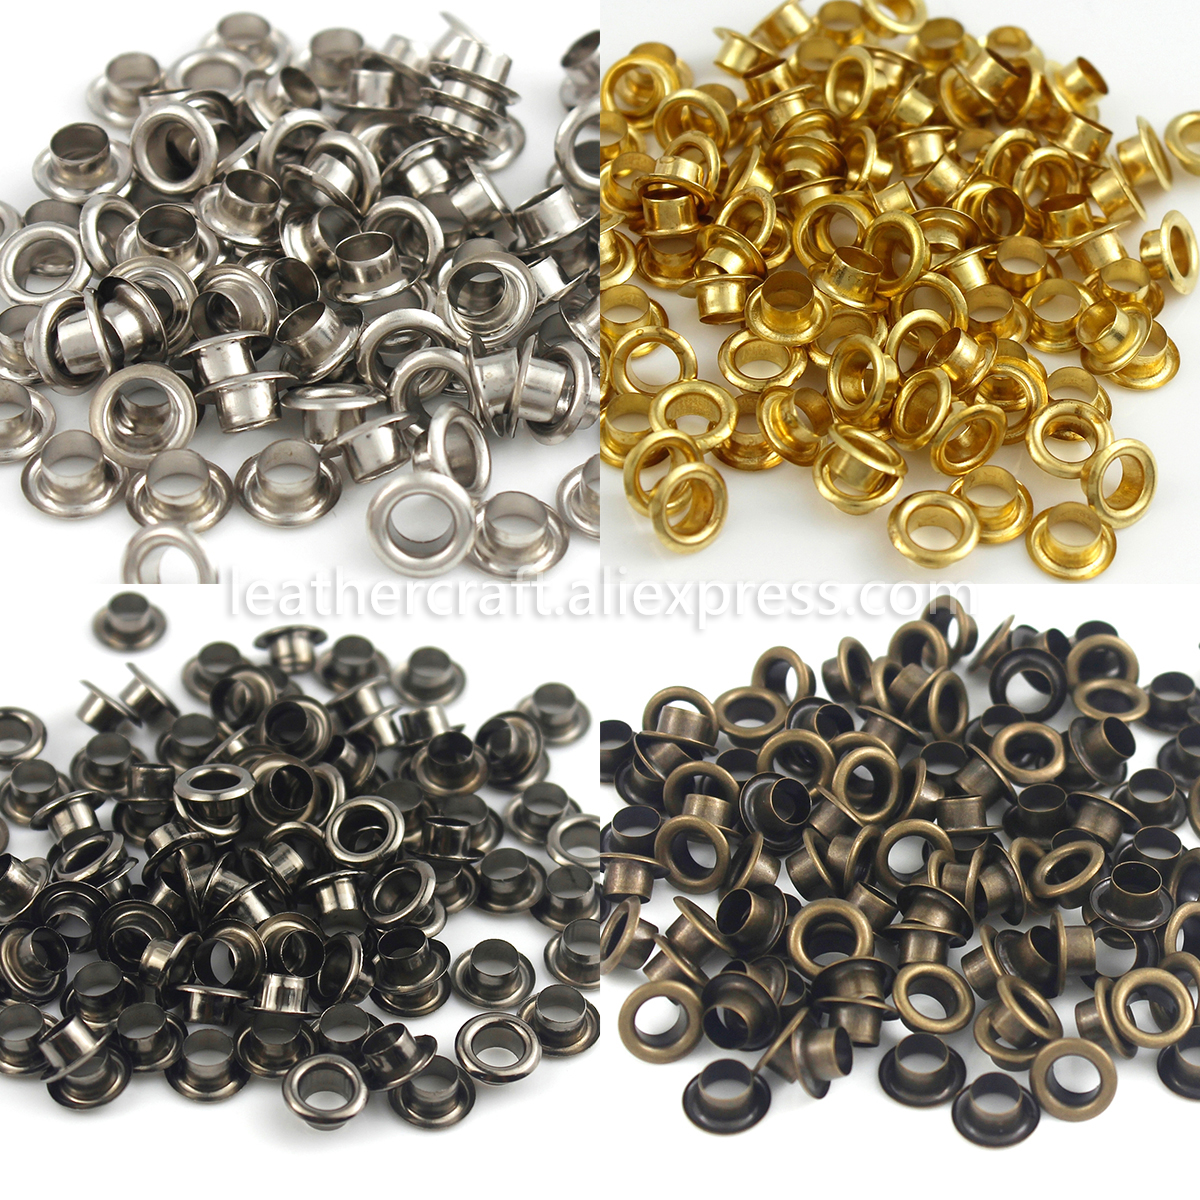 100sets 4mm Brass Eyelet with Washer Leather Craft Repair Grommet Round Eye Rings For Shoes Bag Clothing Leather Belt Hat